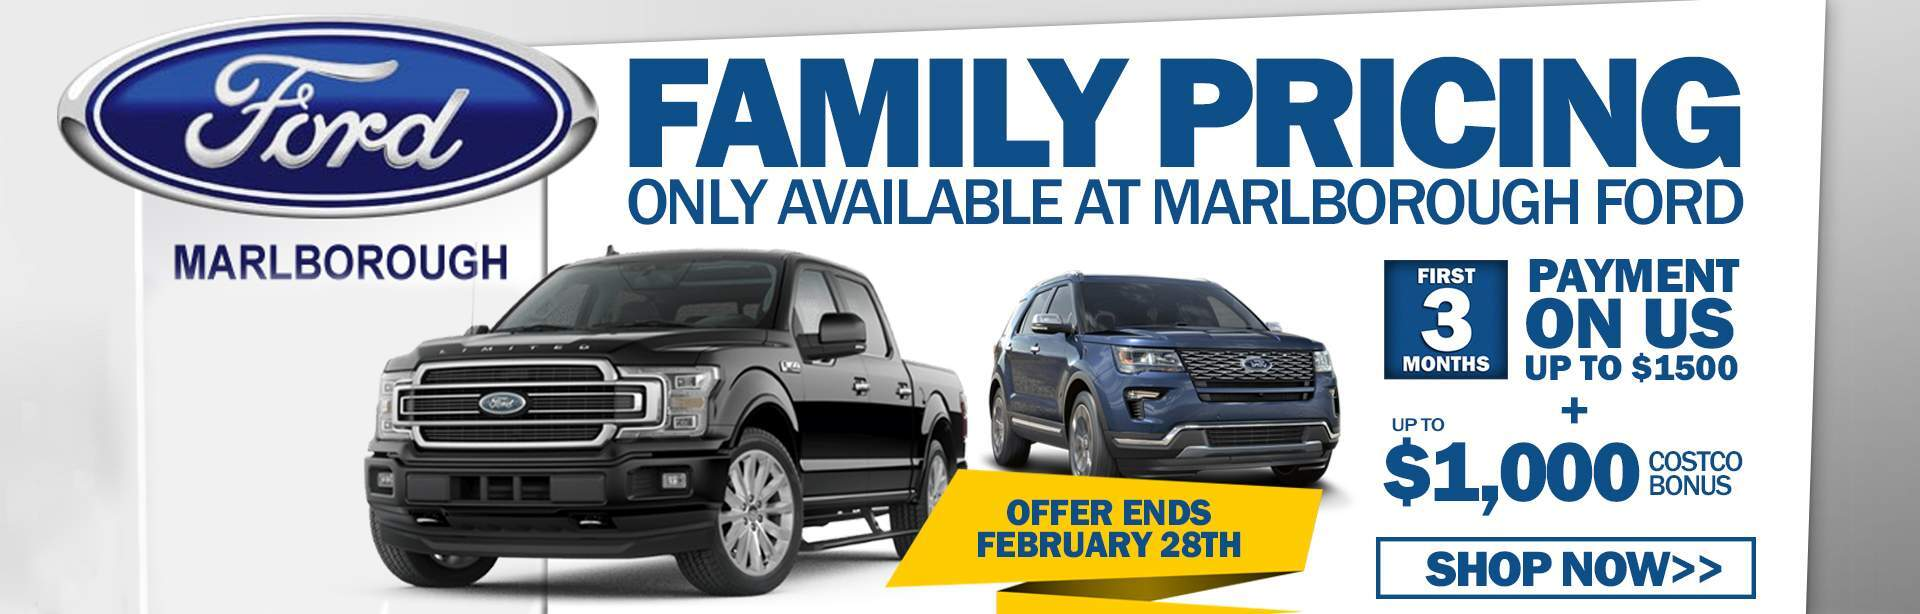 Family Pricing at Marlborough Ford